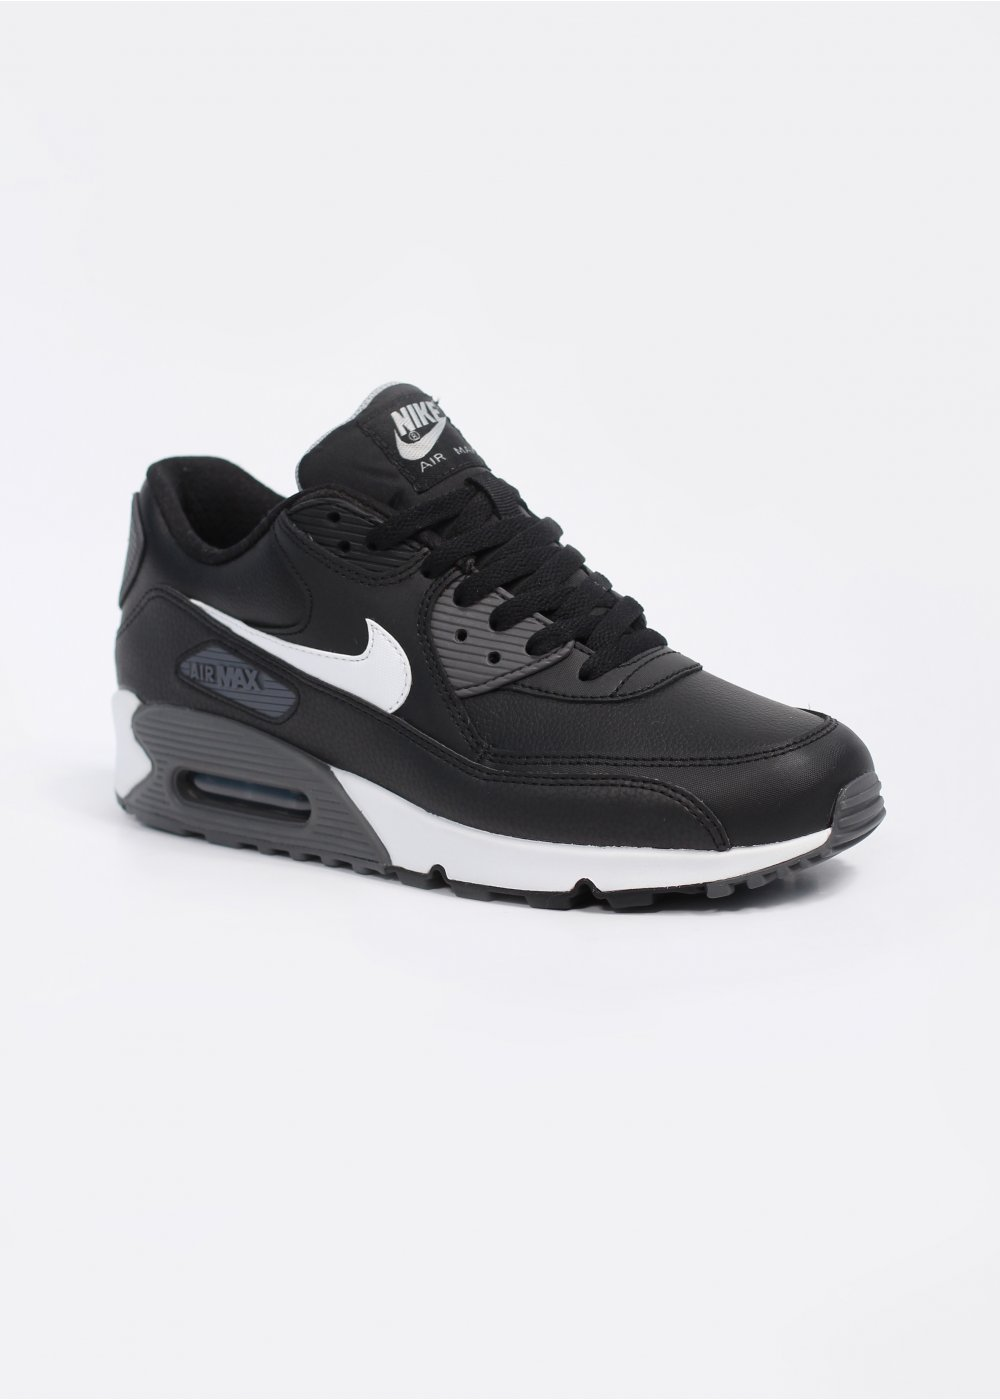 Air Max 90 Black And White And Gray